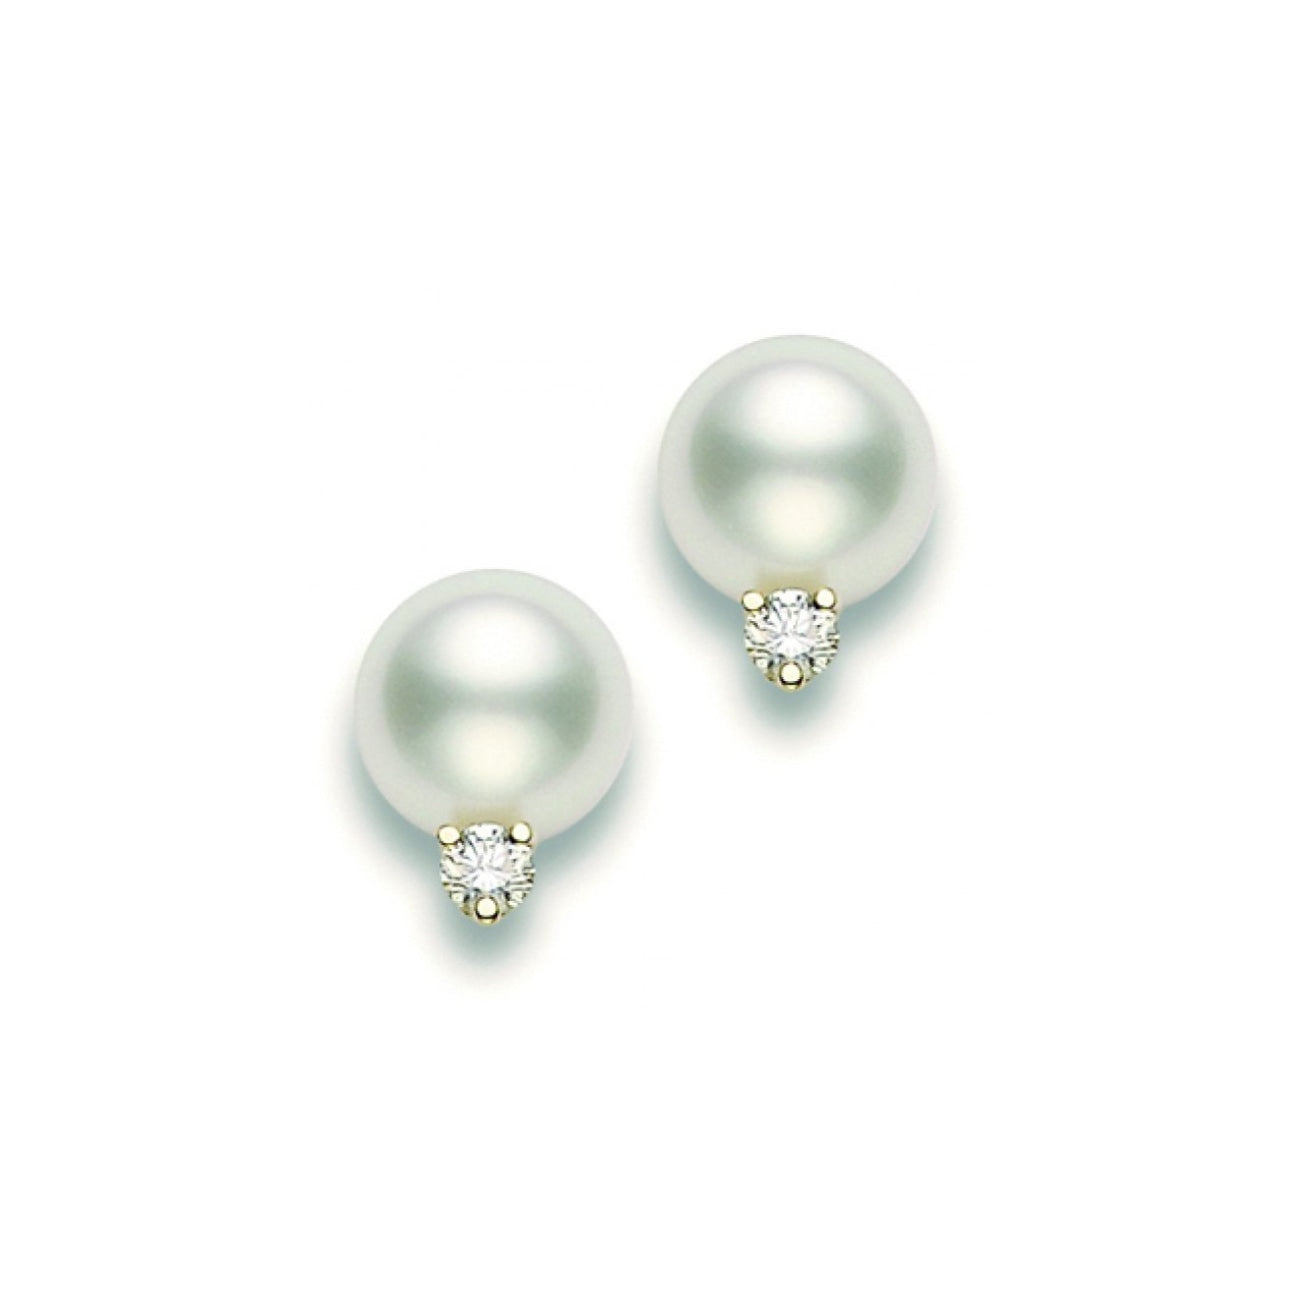 Mikimoto Jewelry - Mikimoto 9 mm white gold cultured pearl earrings | Manfredi Jewels